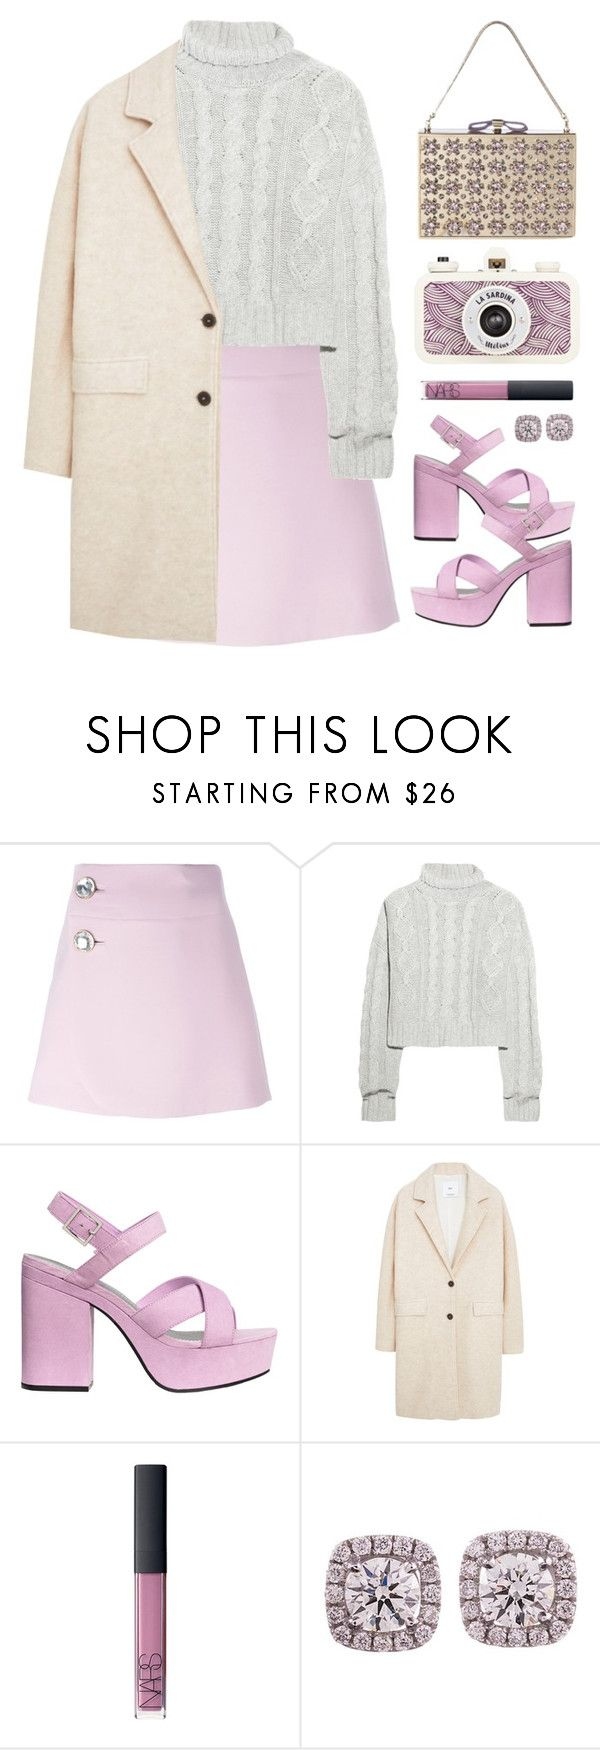 """Lavender Skies"" by gangsterwizard ❤ liked on Polyvore featuring Marni, Bamford, Nina Ricci, H&M, MANGO, NARS Cosmetics, monochrome and winter2015"